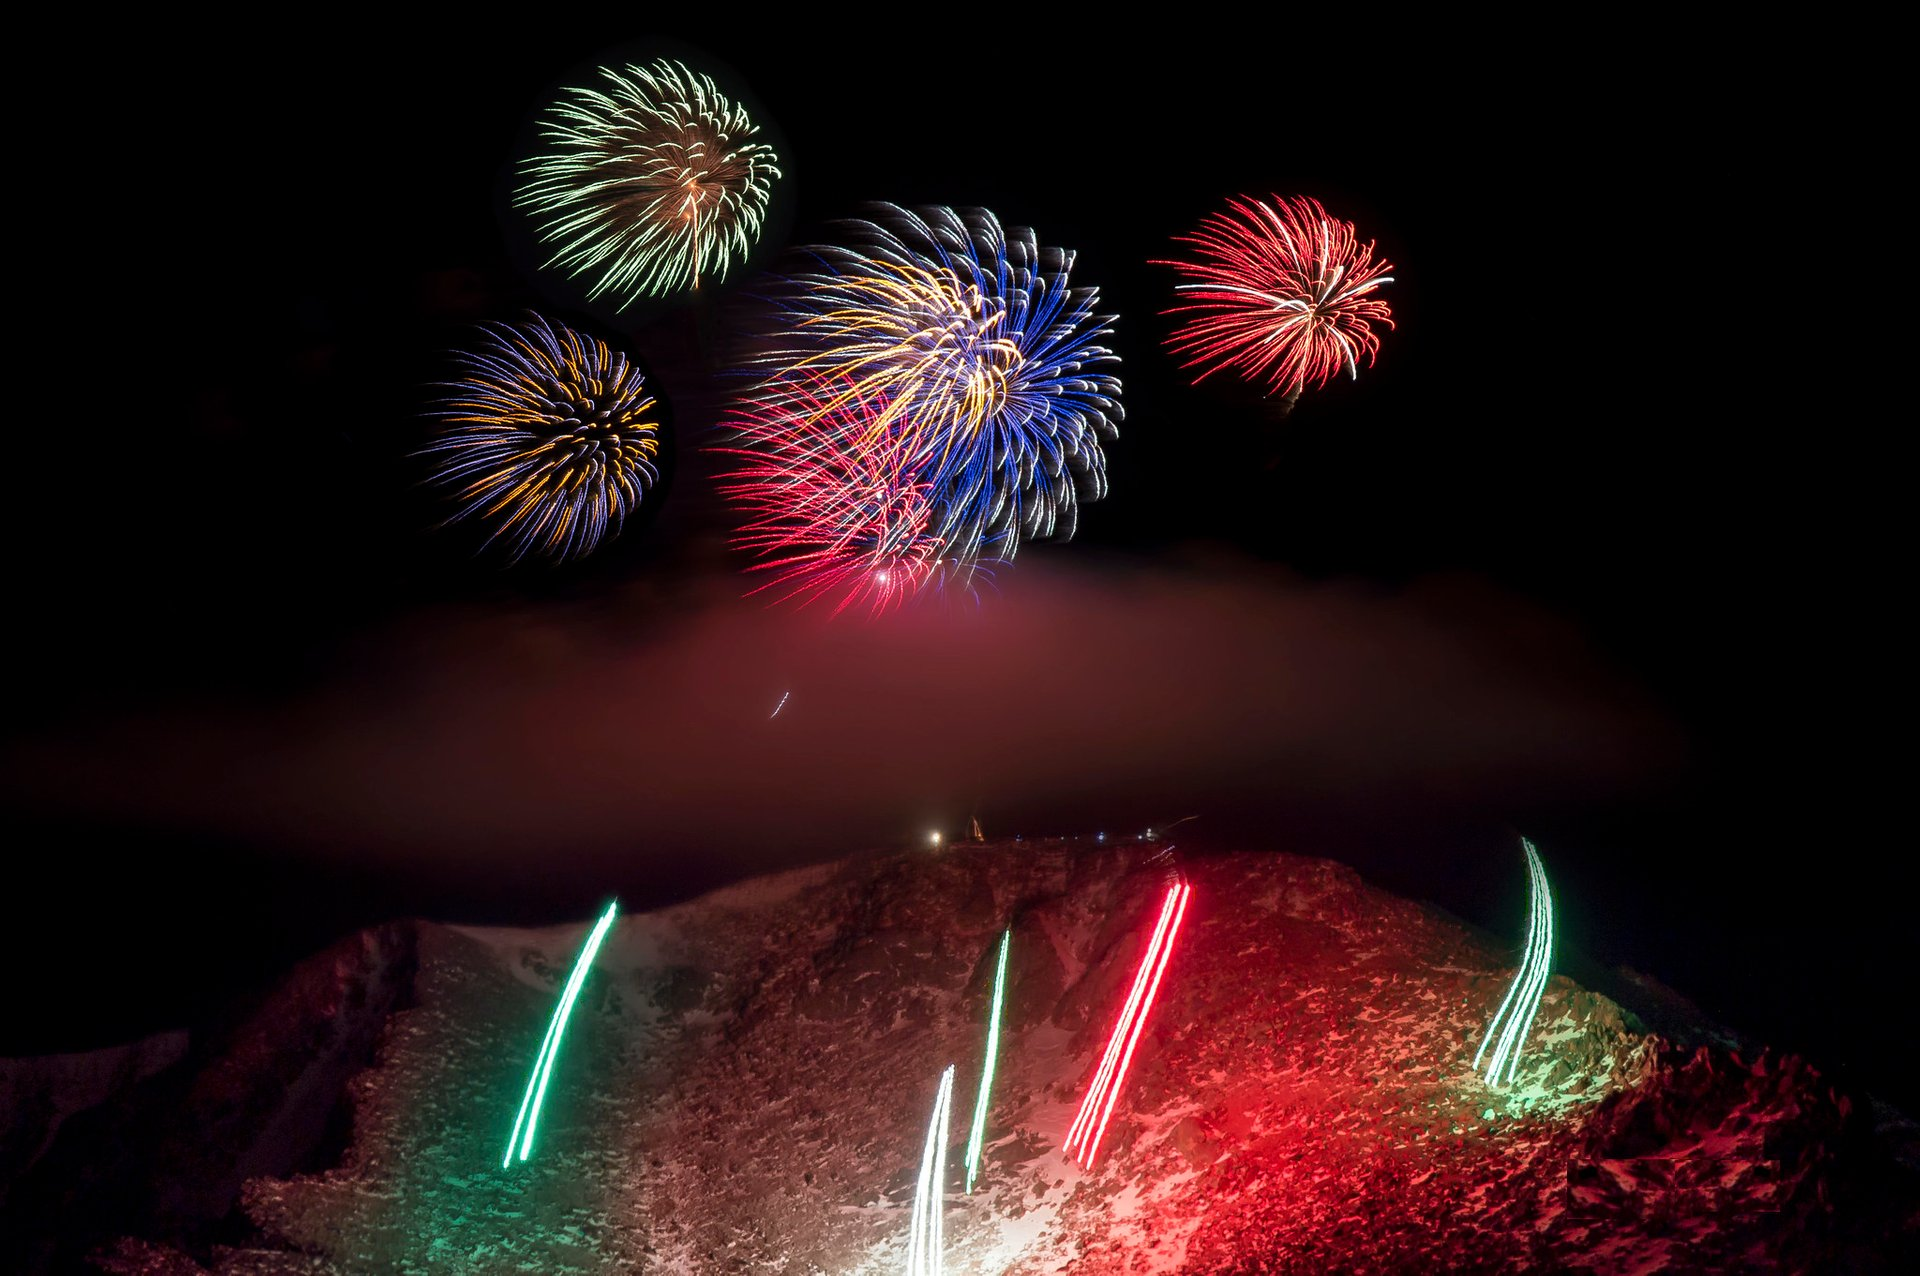 Christmas Events In Colorado Springs 2021 New Year S Eve 2021 In Colorado Springs Co Dates